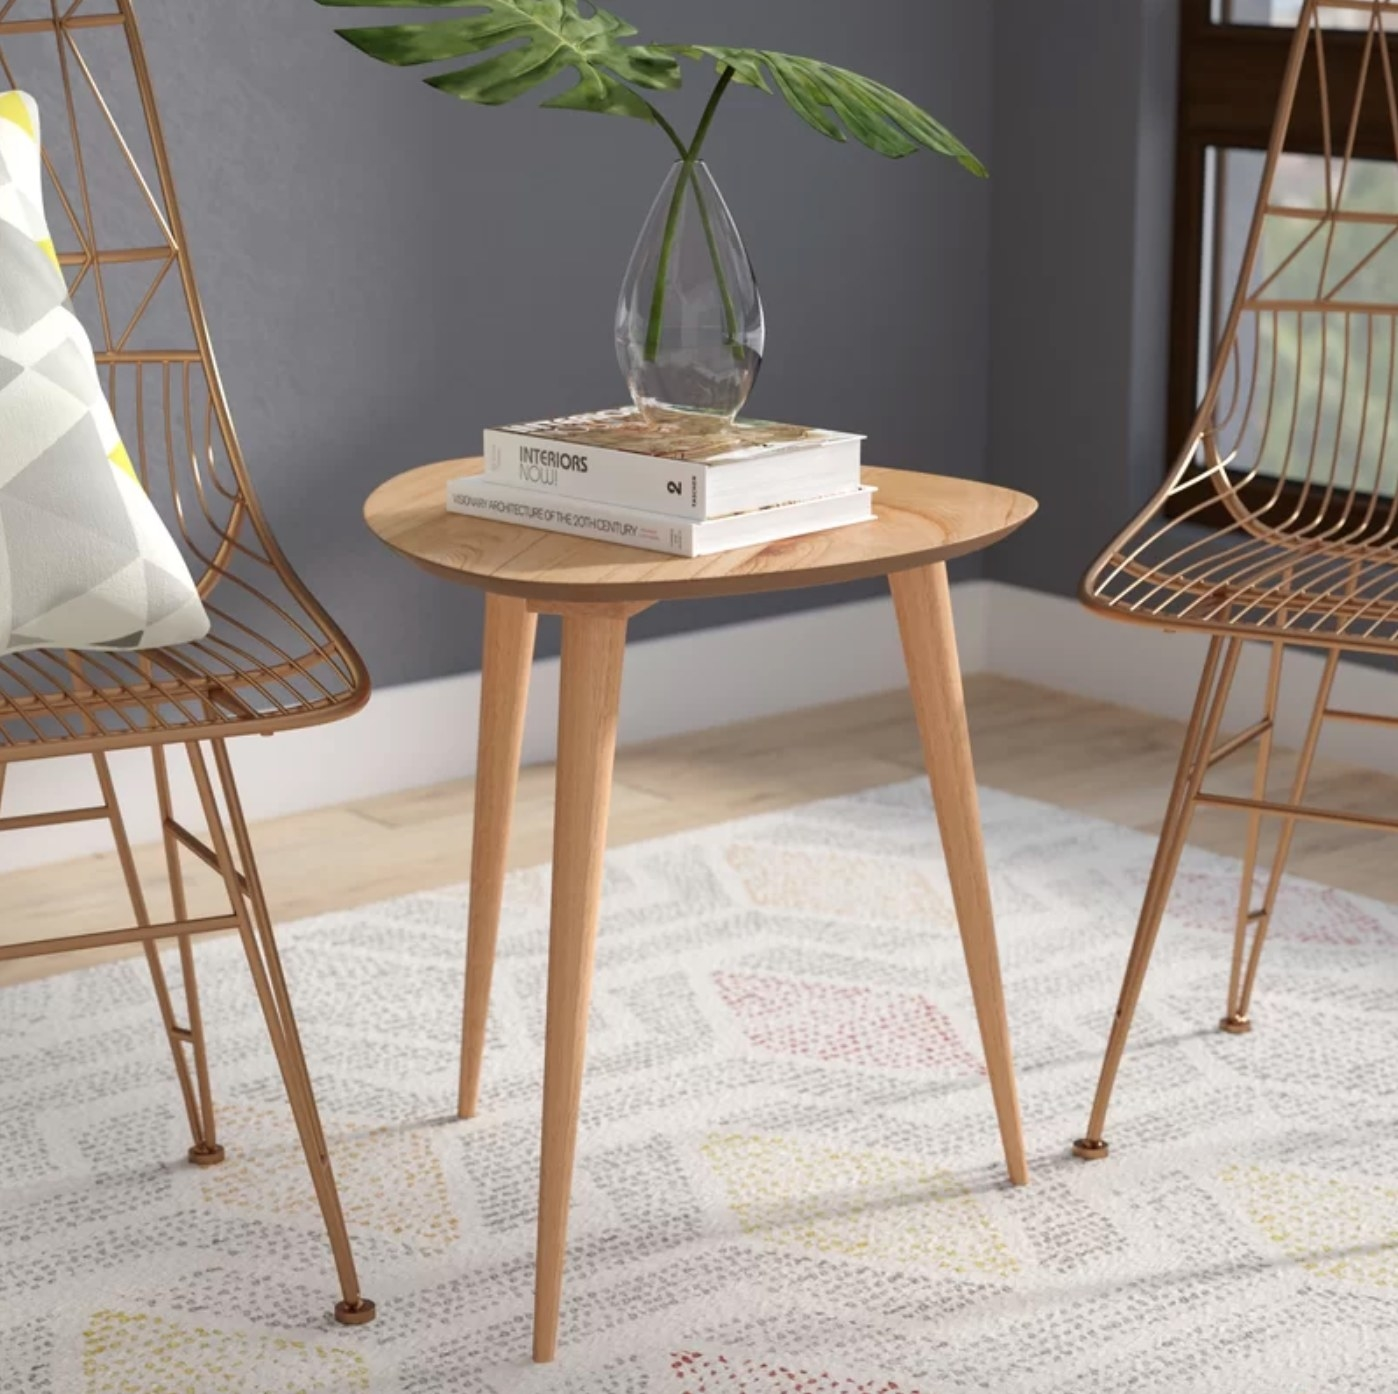 The wood end table in natural